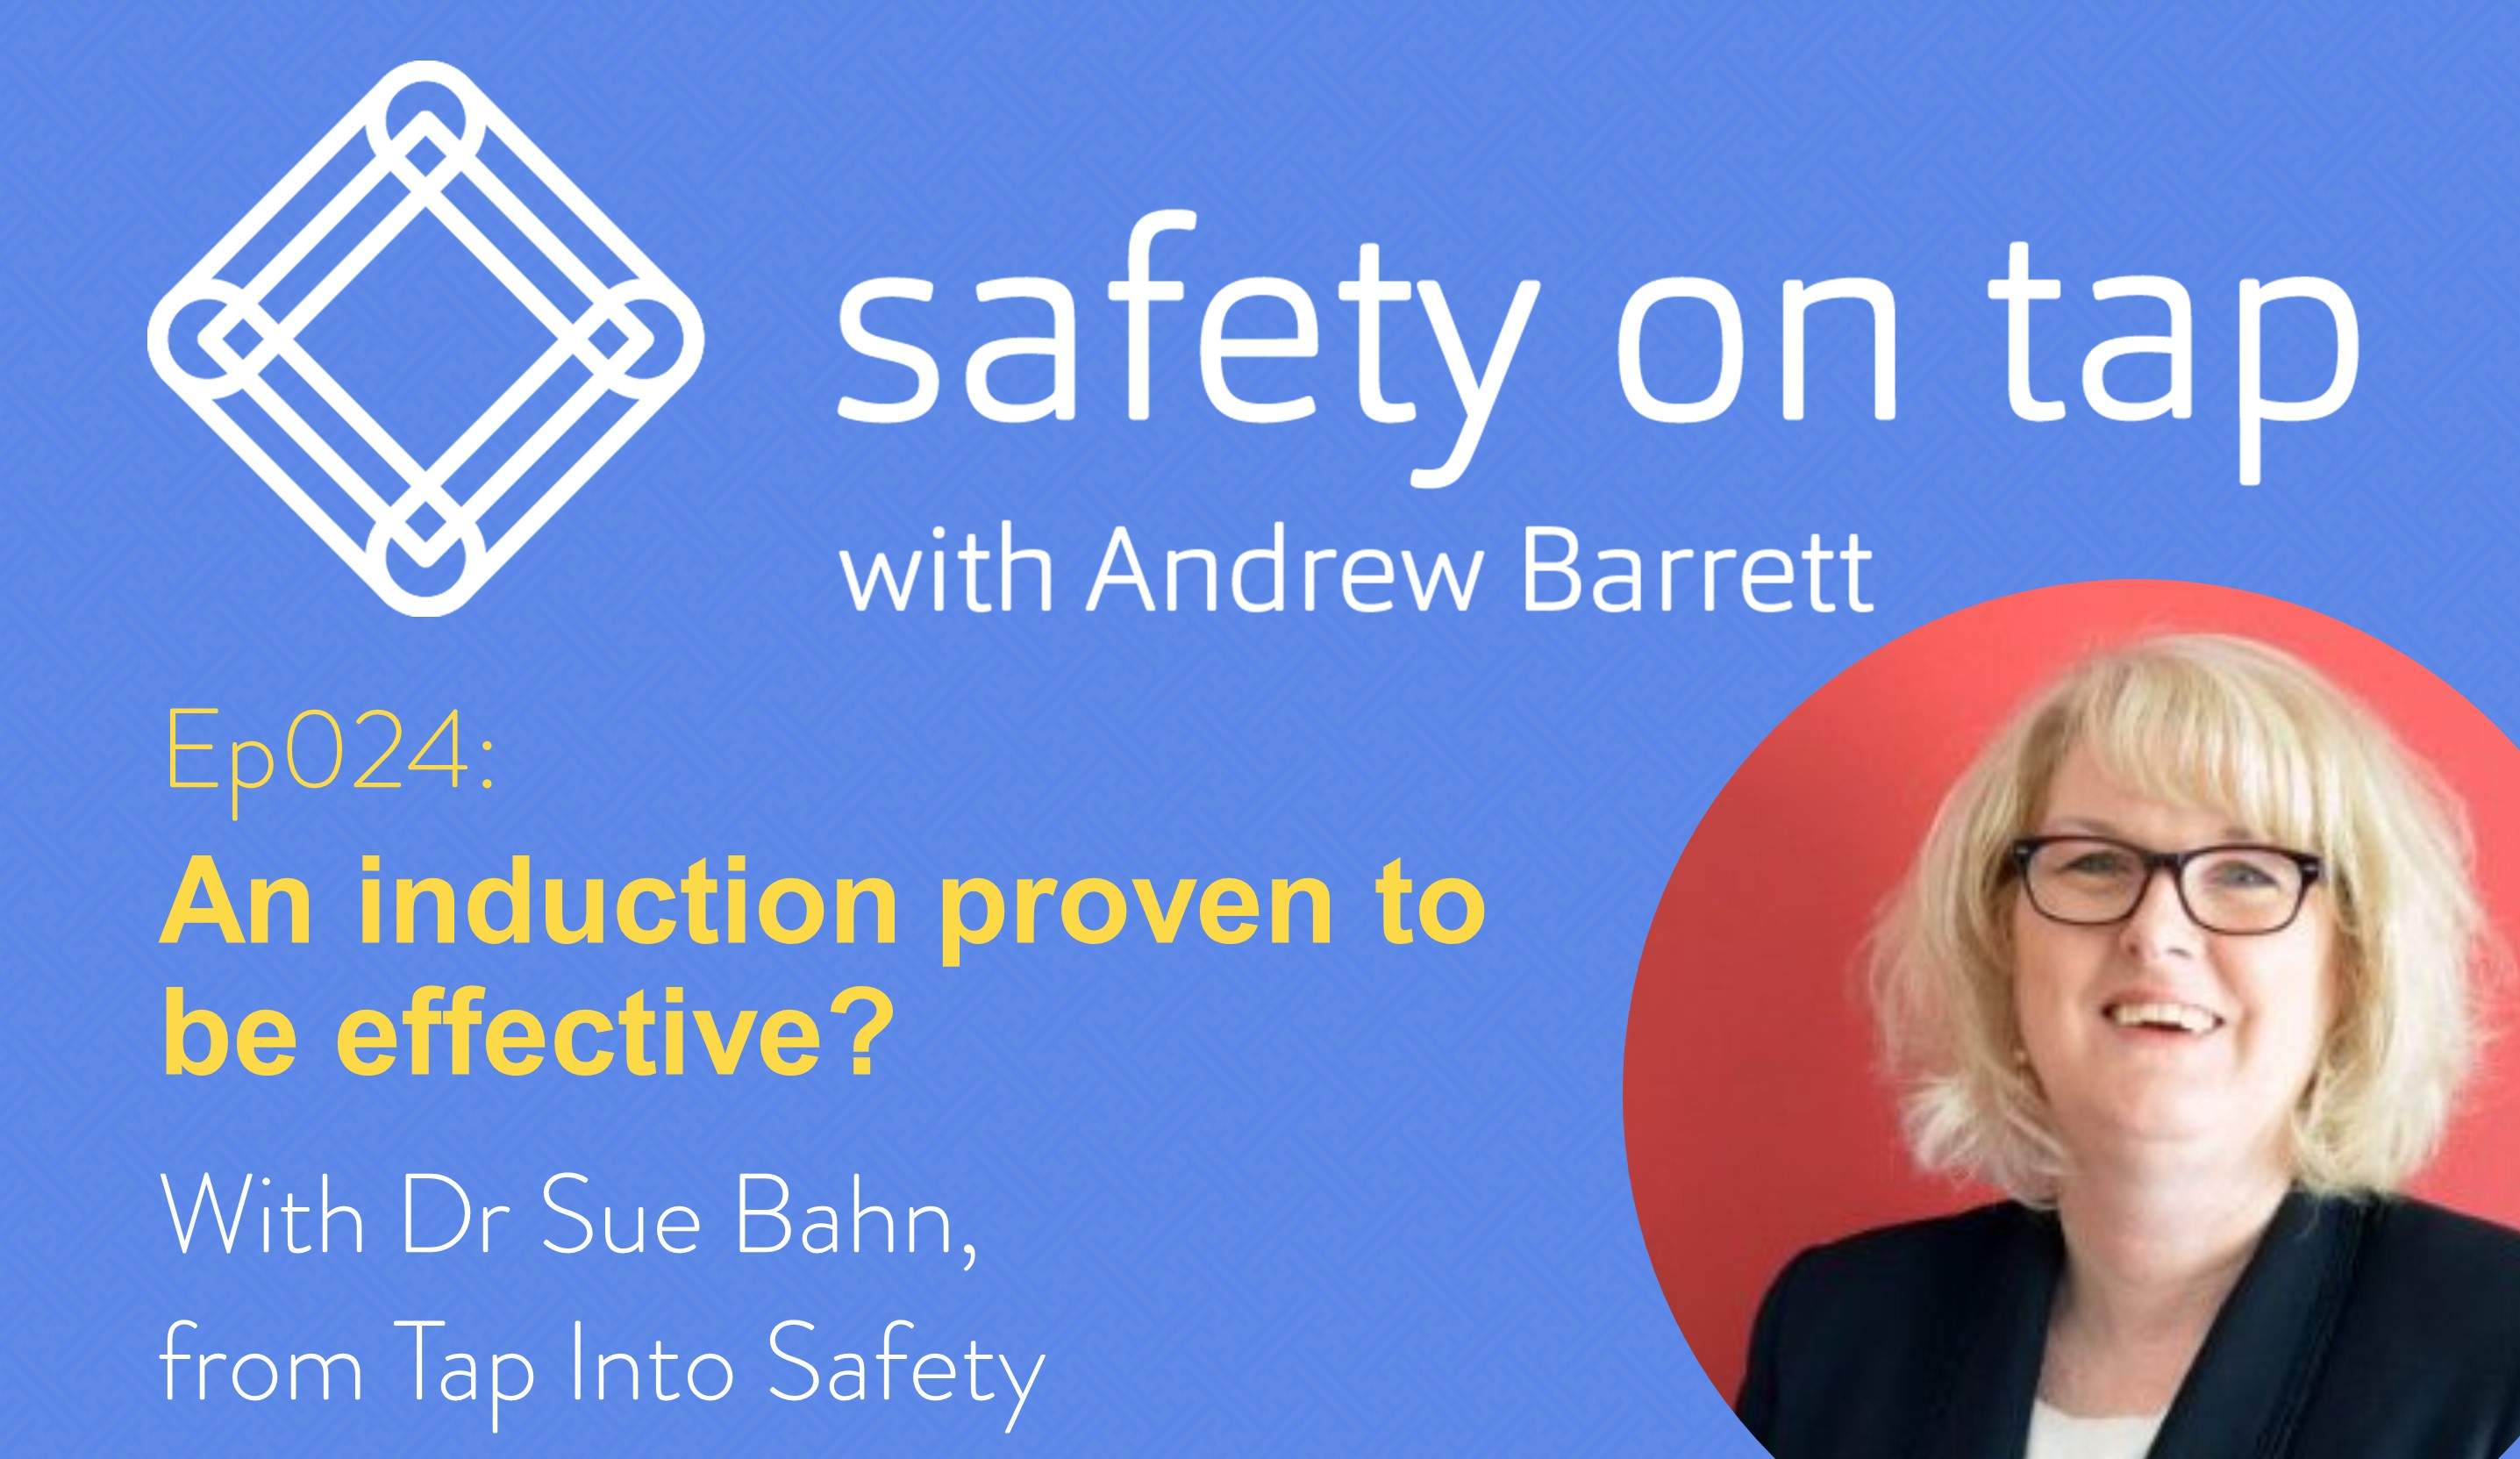 Ep024: An induction proven to be effective? with Dr Sue Bahn, from Tap Into Safety